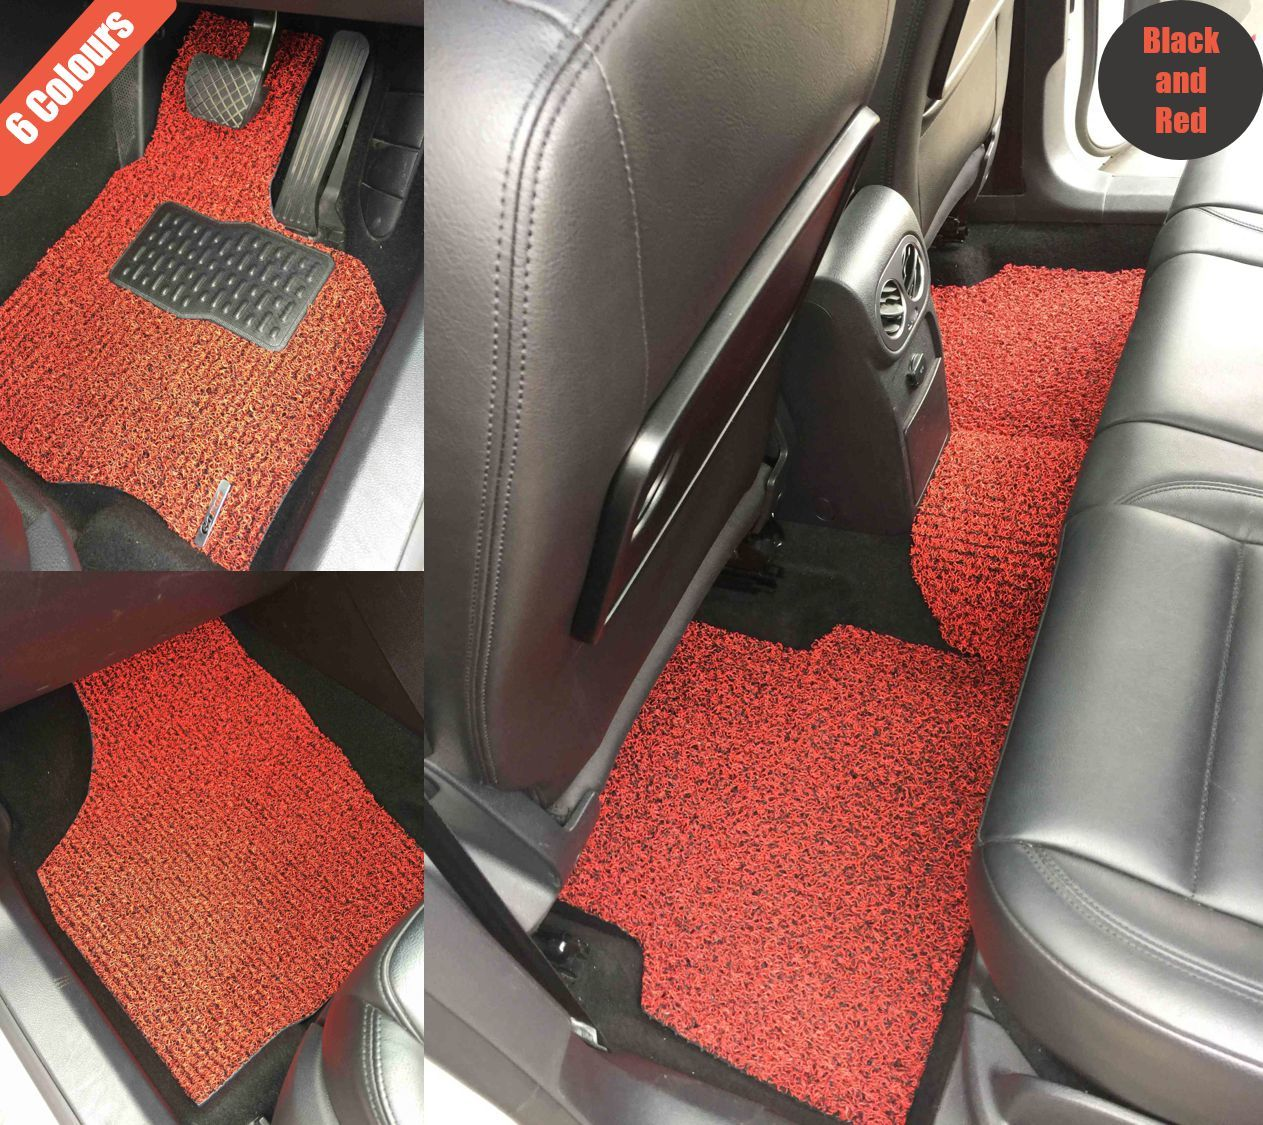 Goroo Custom Car Floor Mats - Black and Red